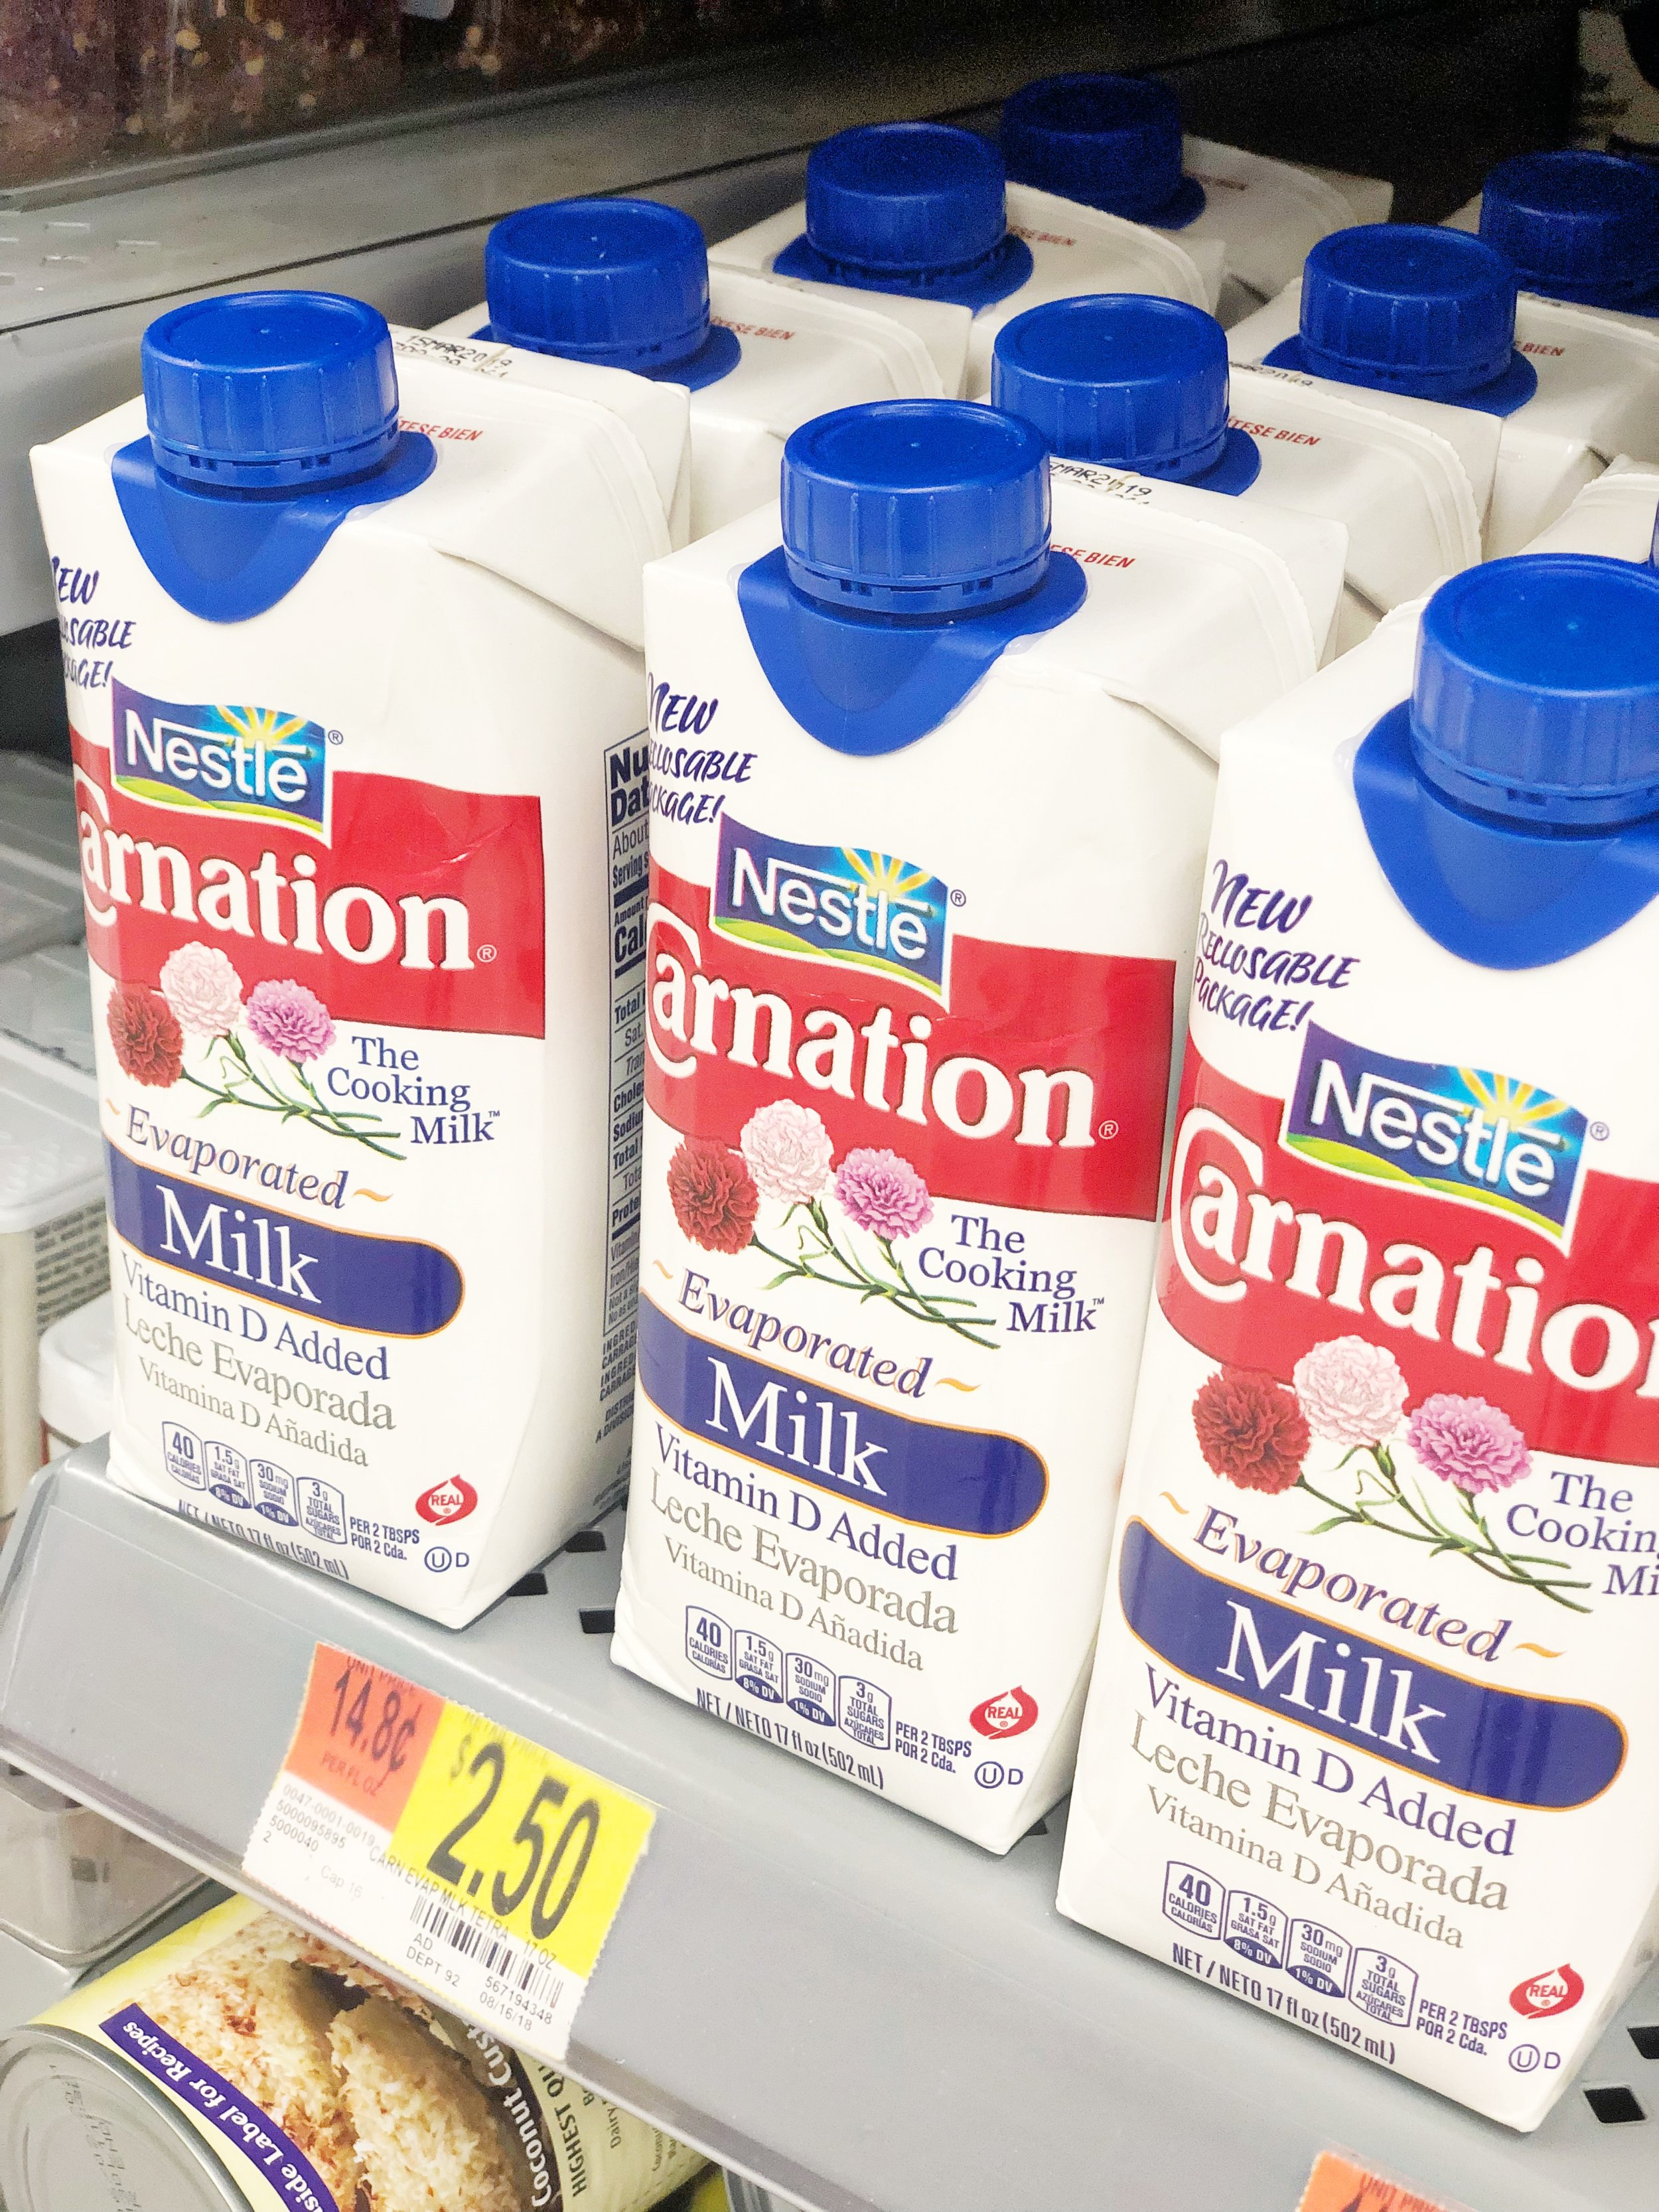 You can find Nestle Evaporated Milk in convenient and easy-to-use Tetra Pak at Walmart!